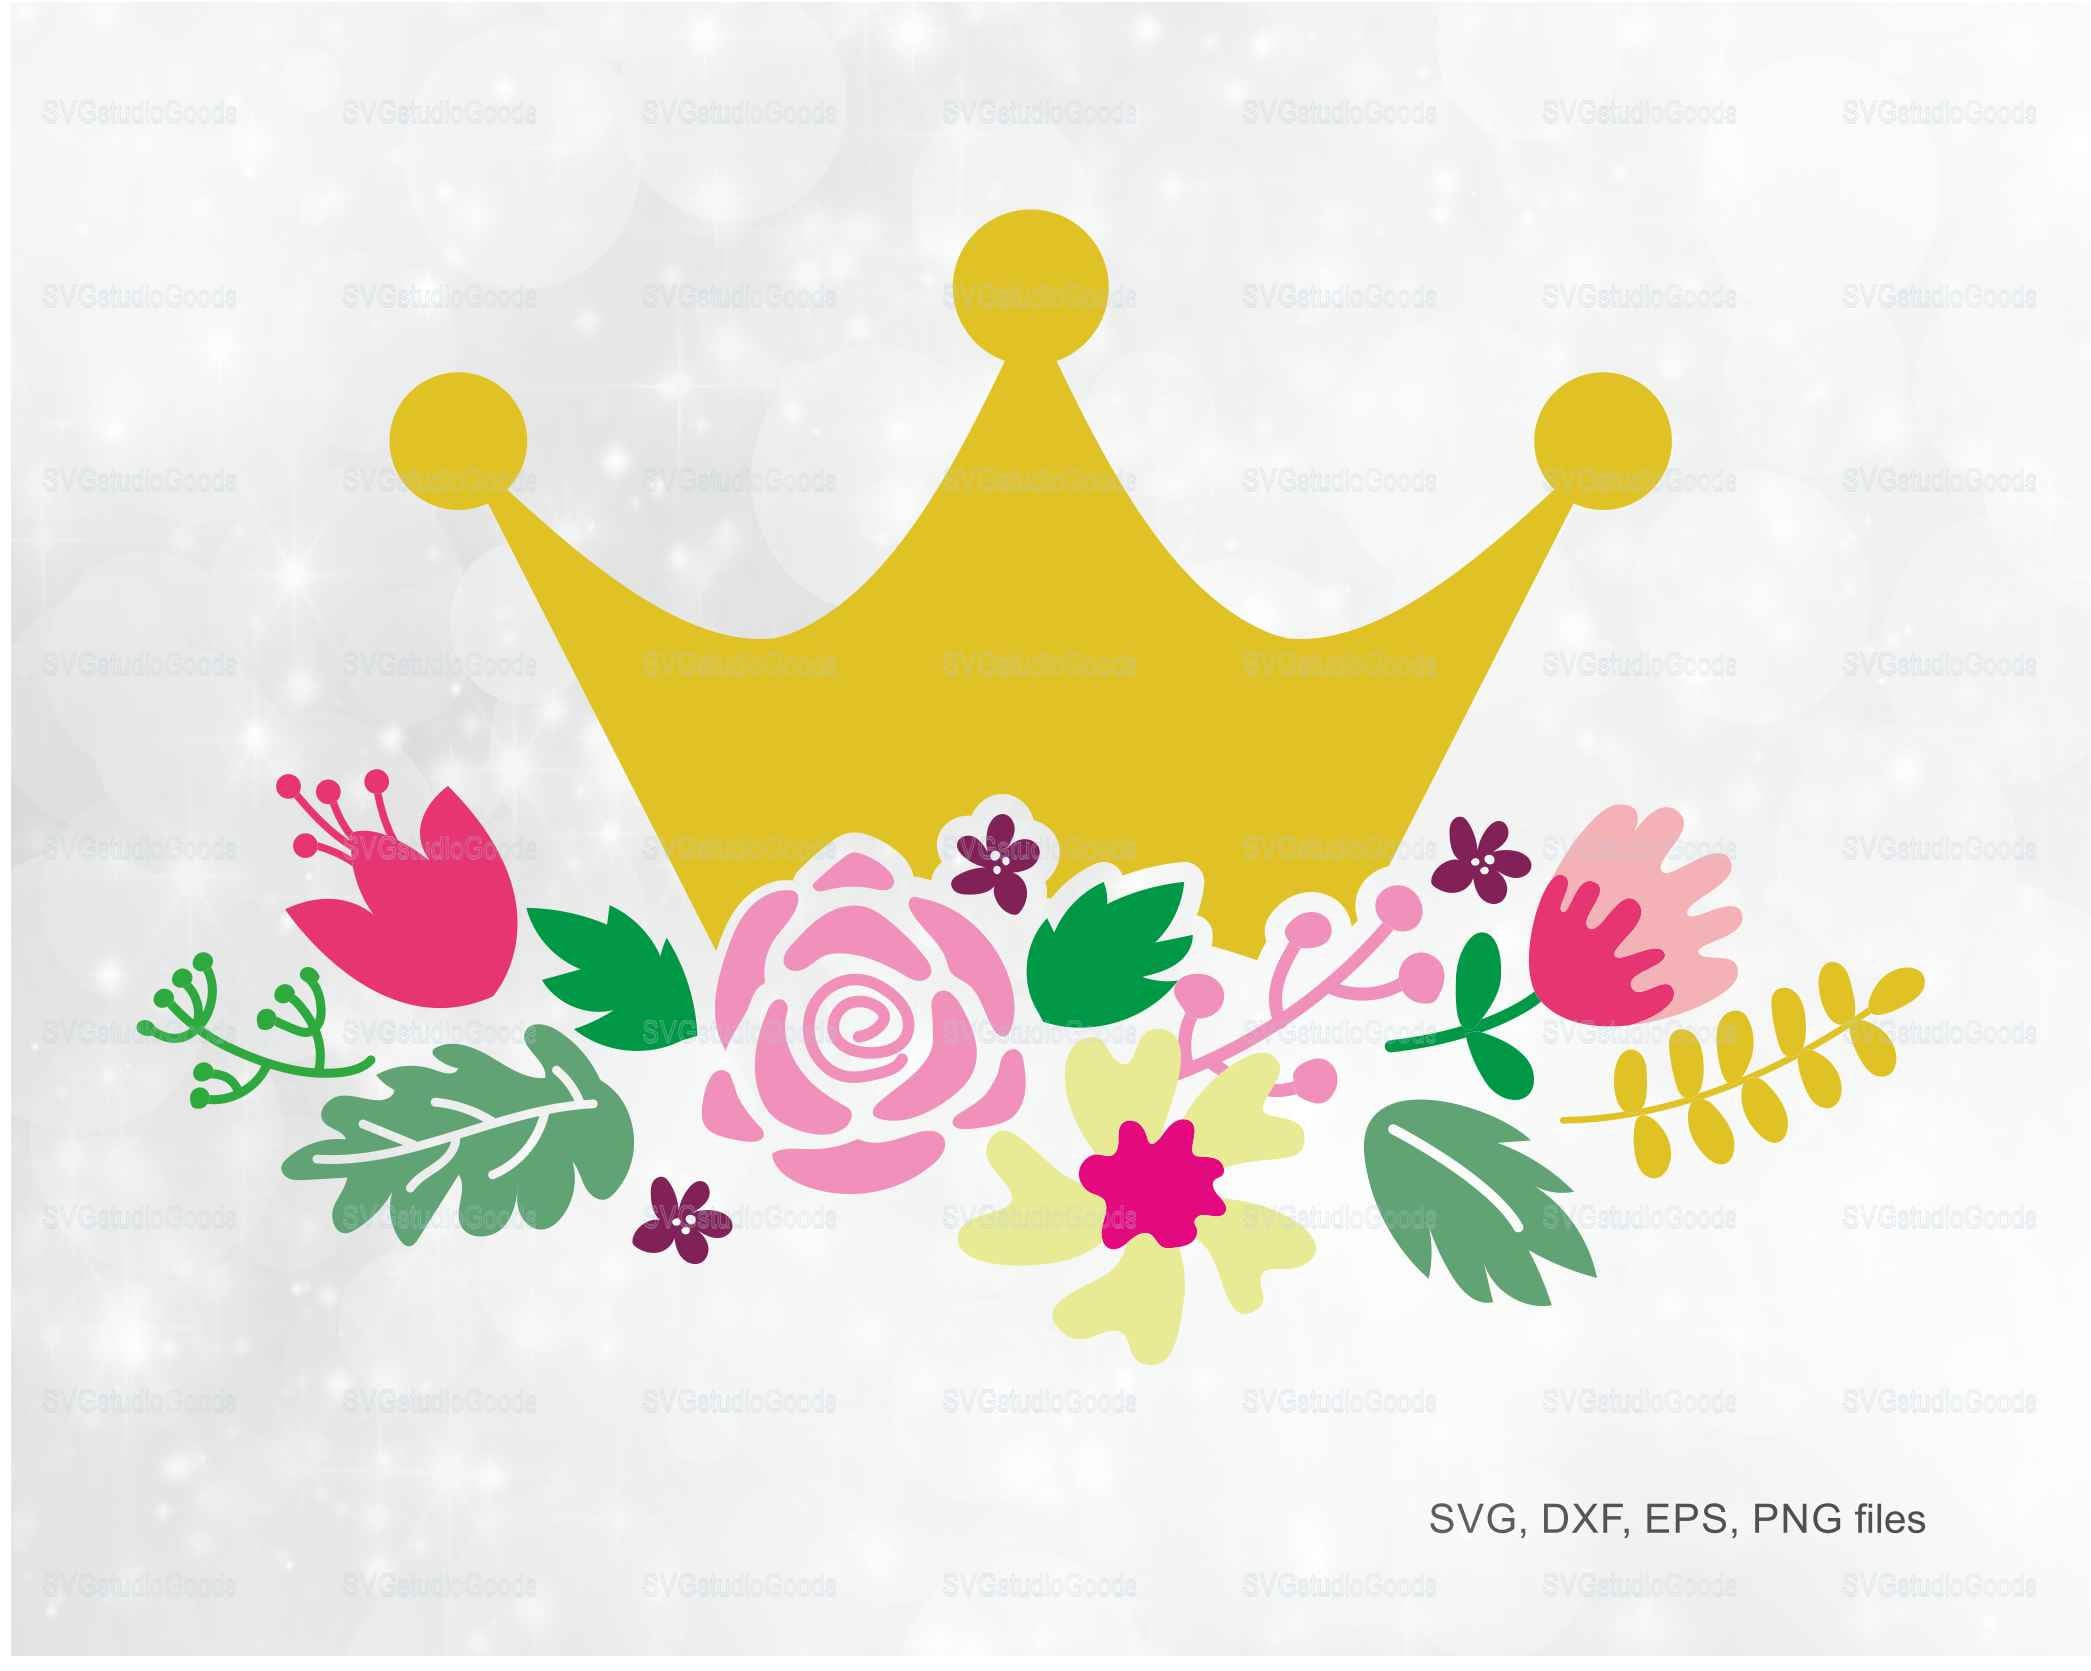 Flower crown svg crown clipart eps dxf png pdf crown etsy 50 izmirmasajfo